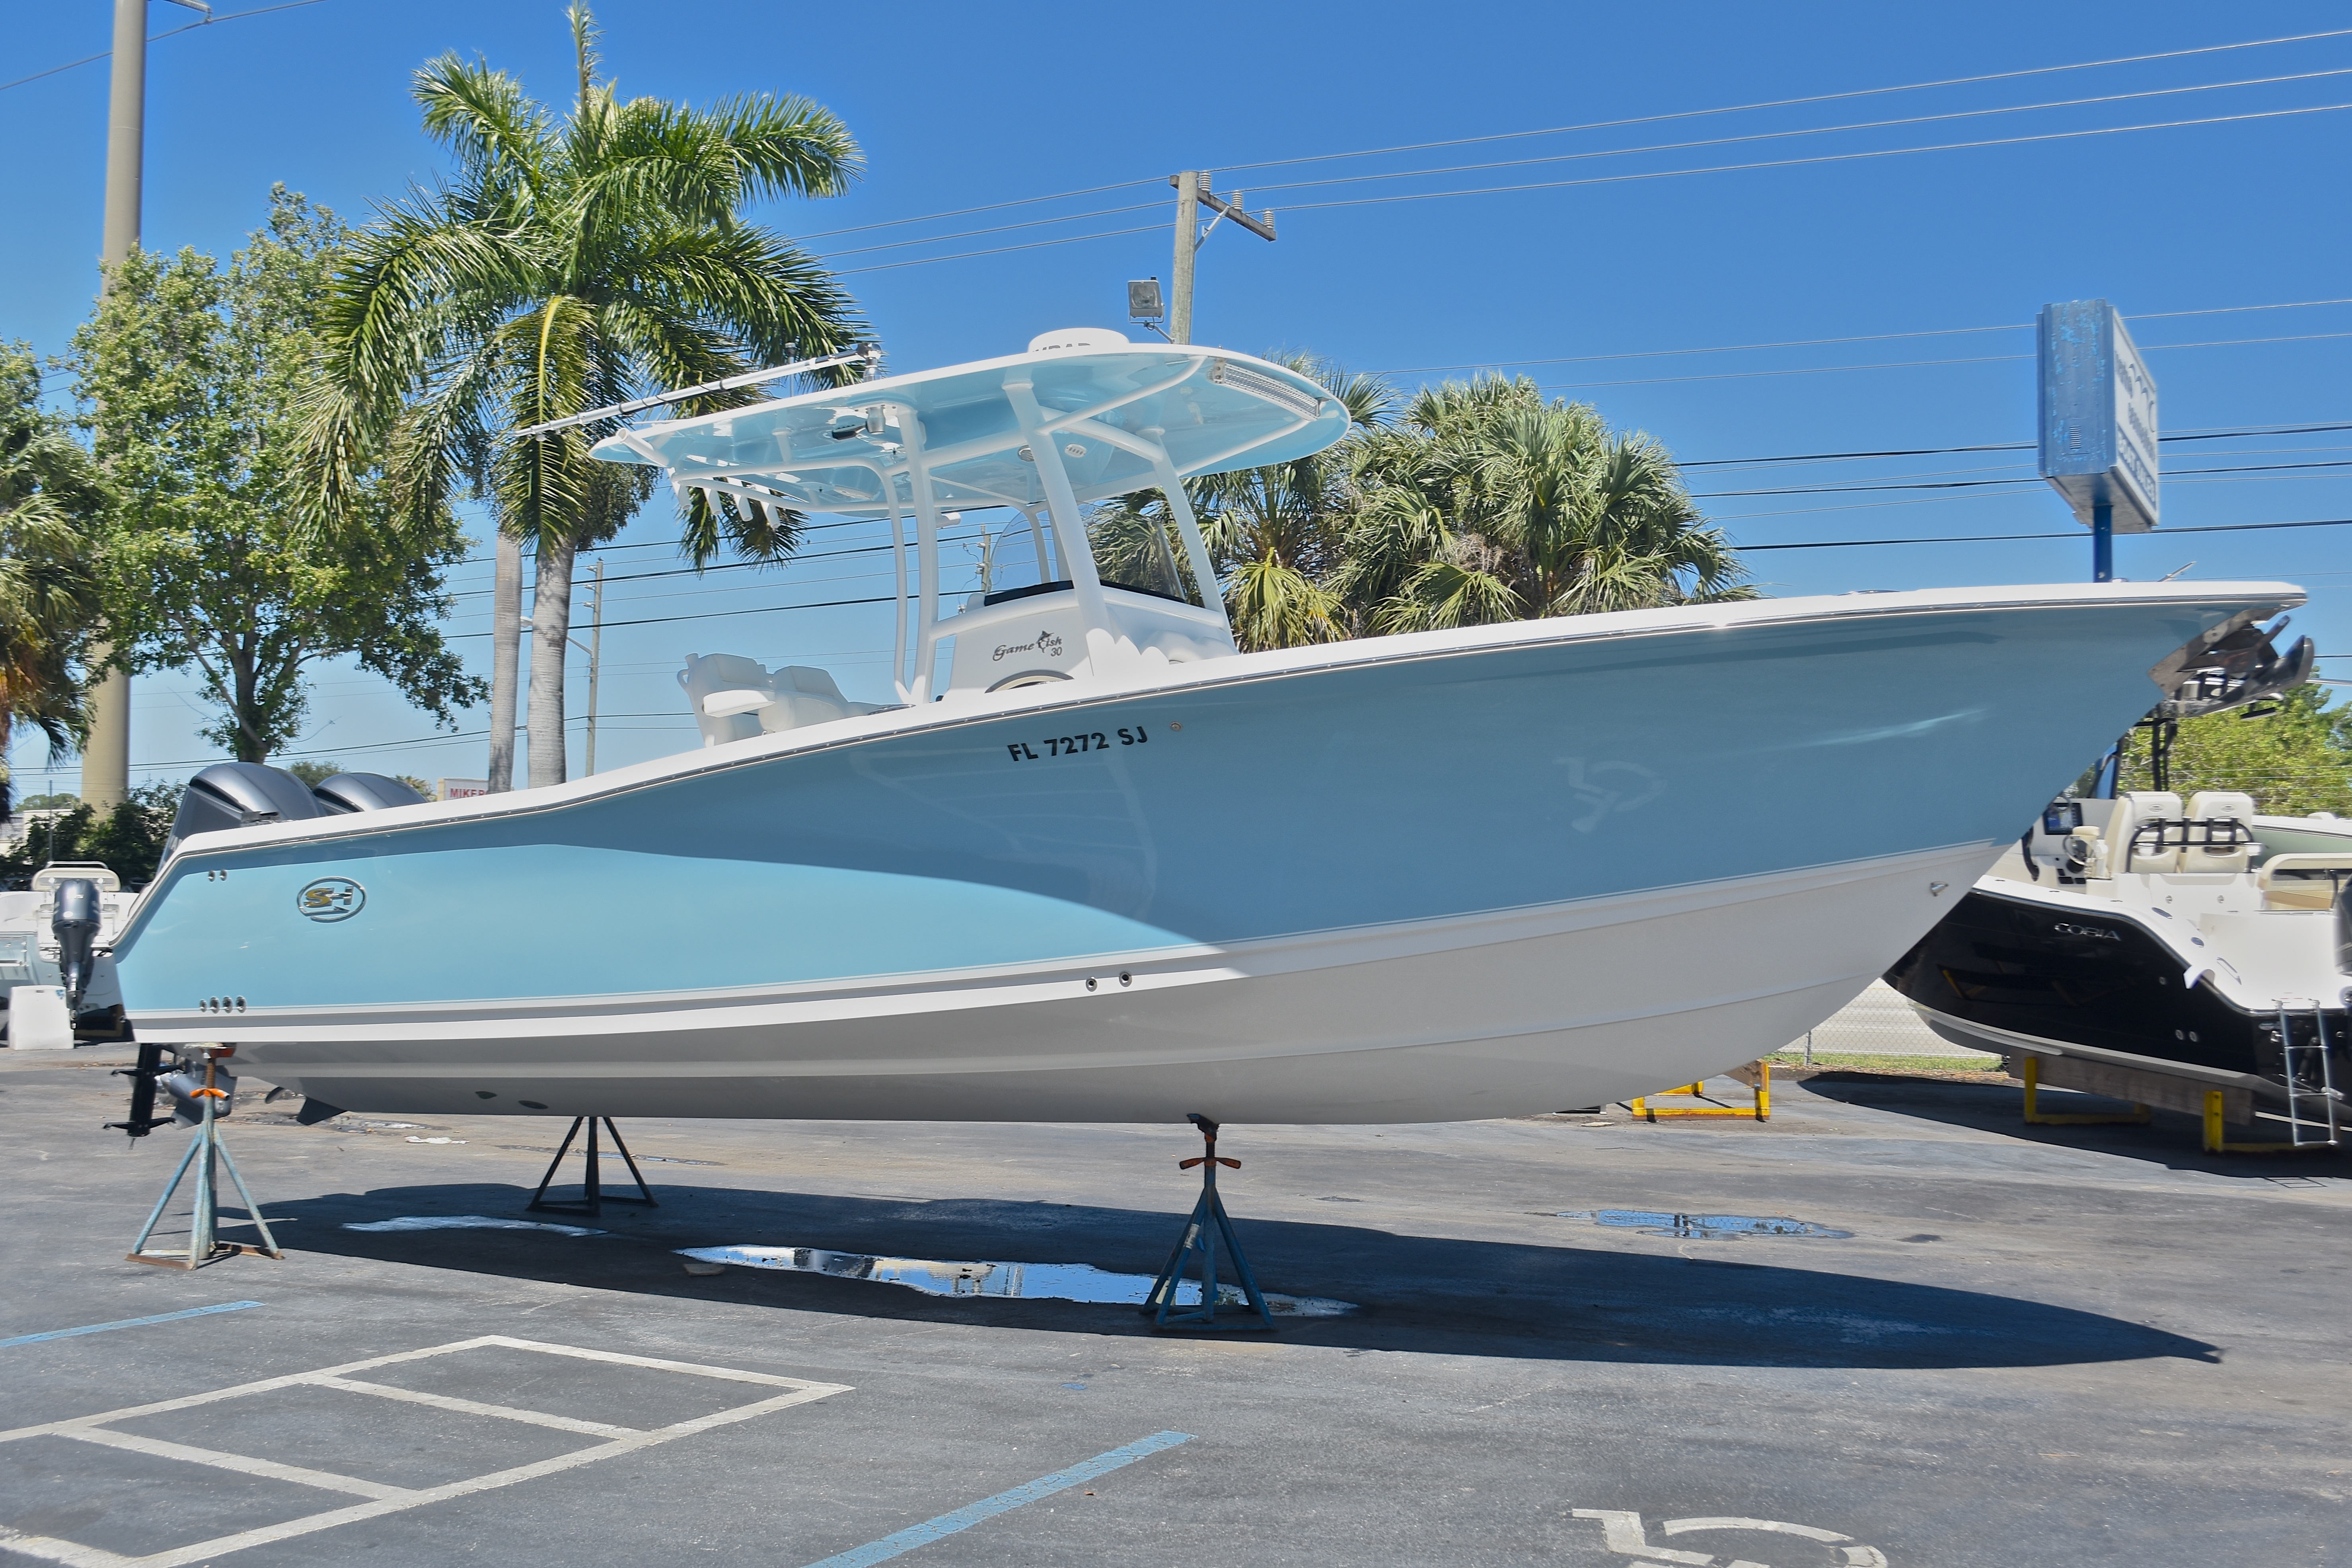 Thumbnail 6 for Used 2015 Sea Hunt Game Fish 30 Center Console boat for sale in West Palm Beach, FL